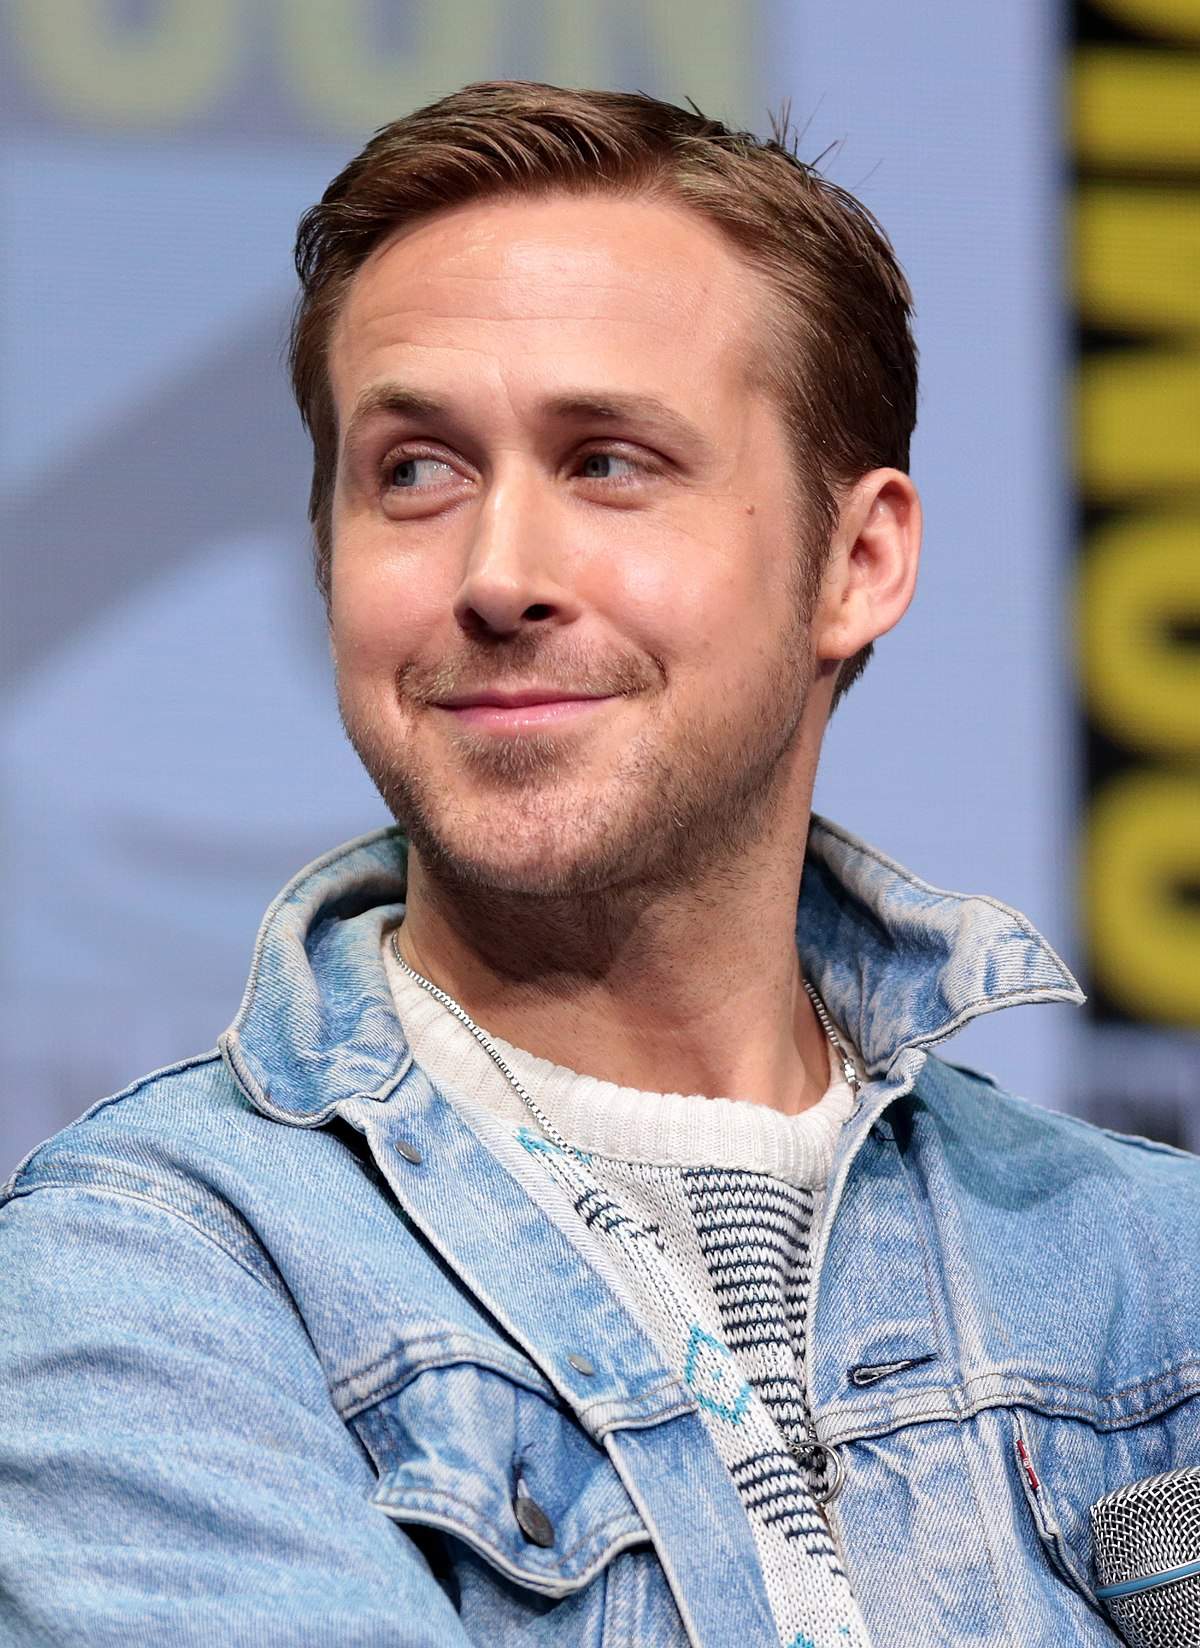 Ryan Gosling - Wikiped... Ryan Gosling